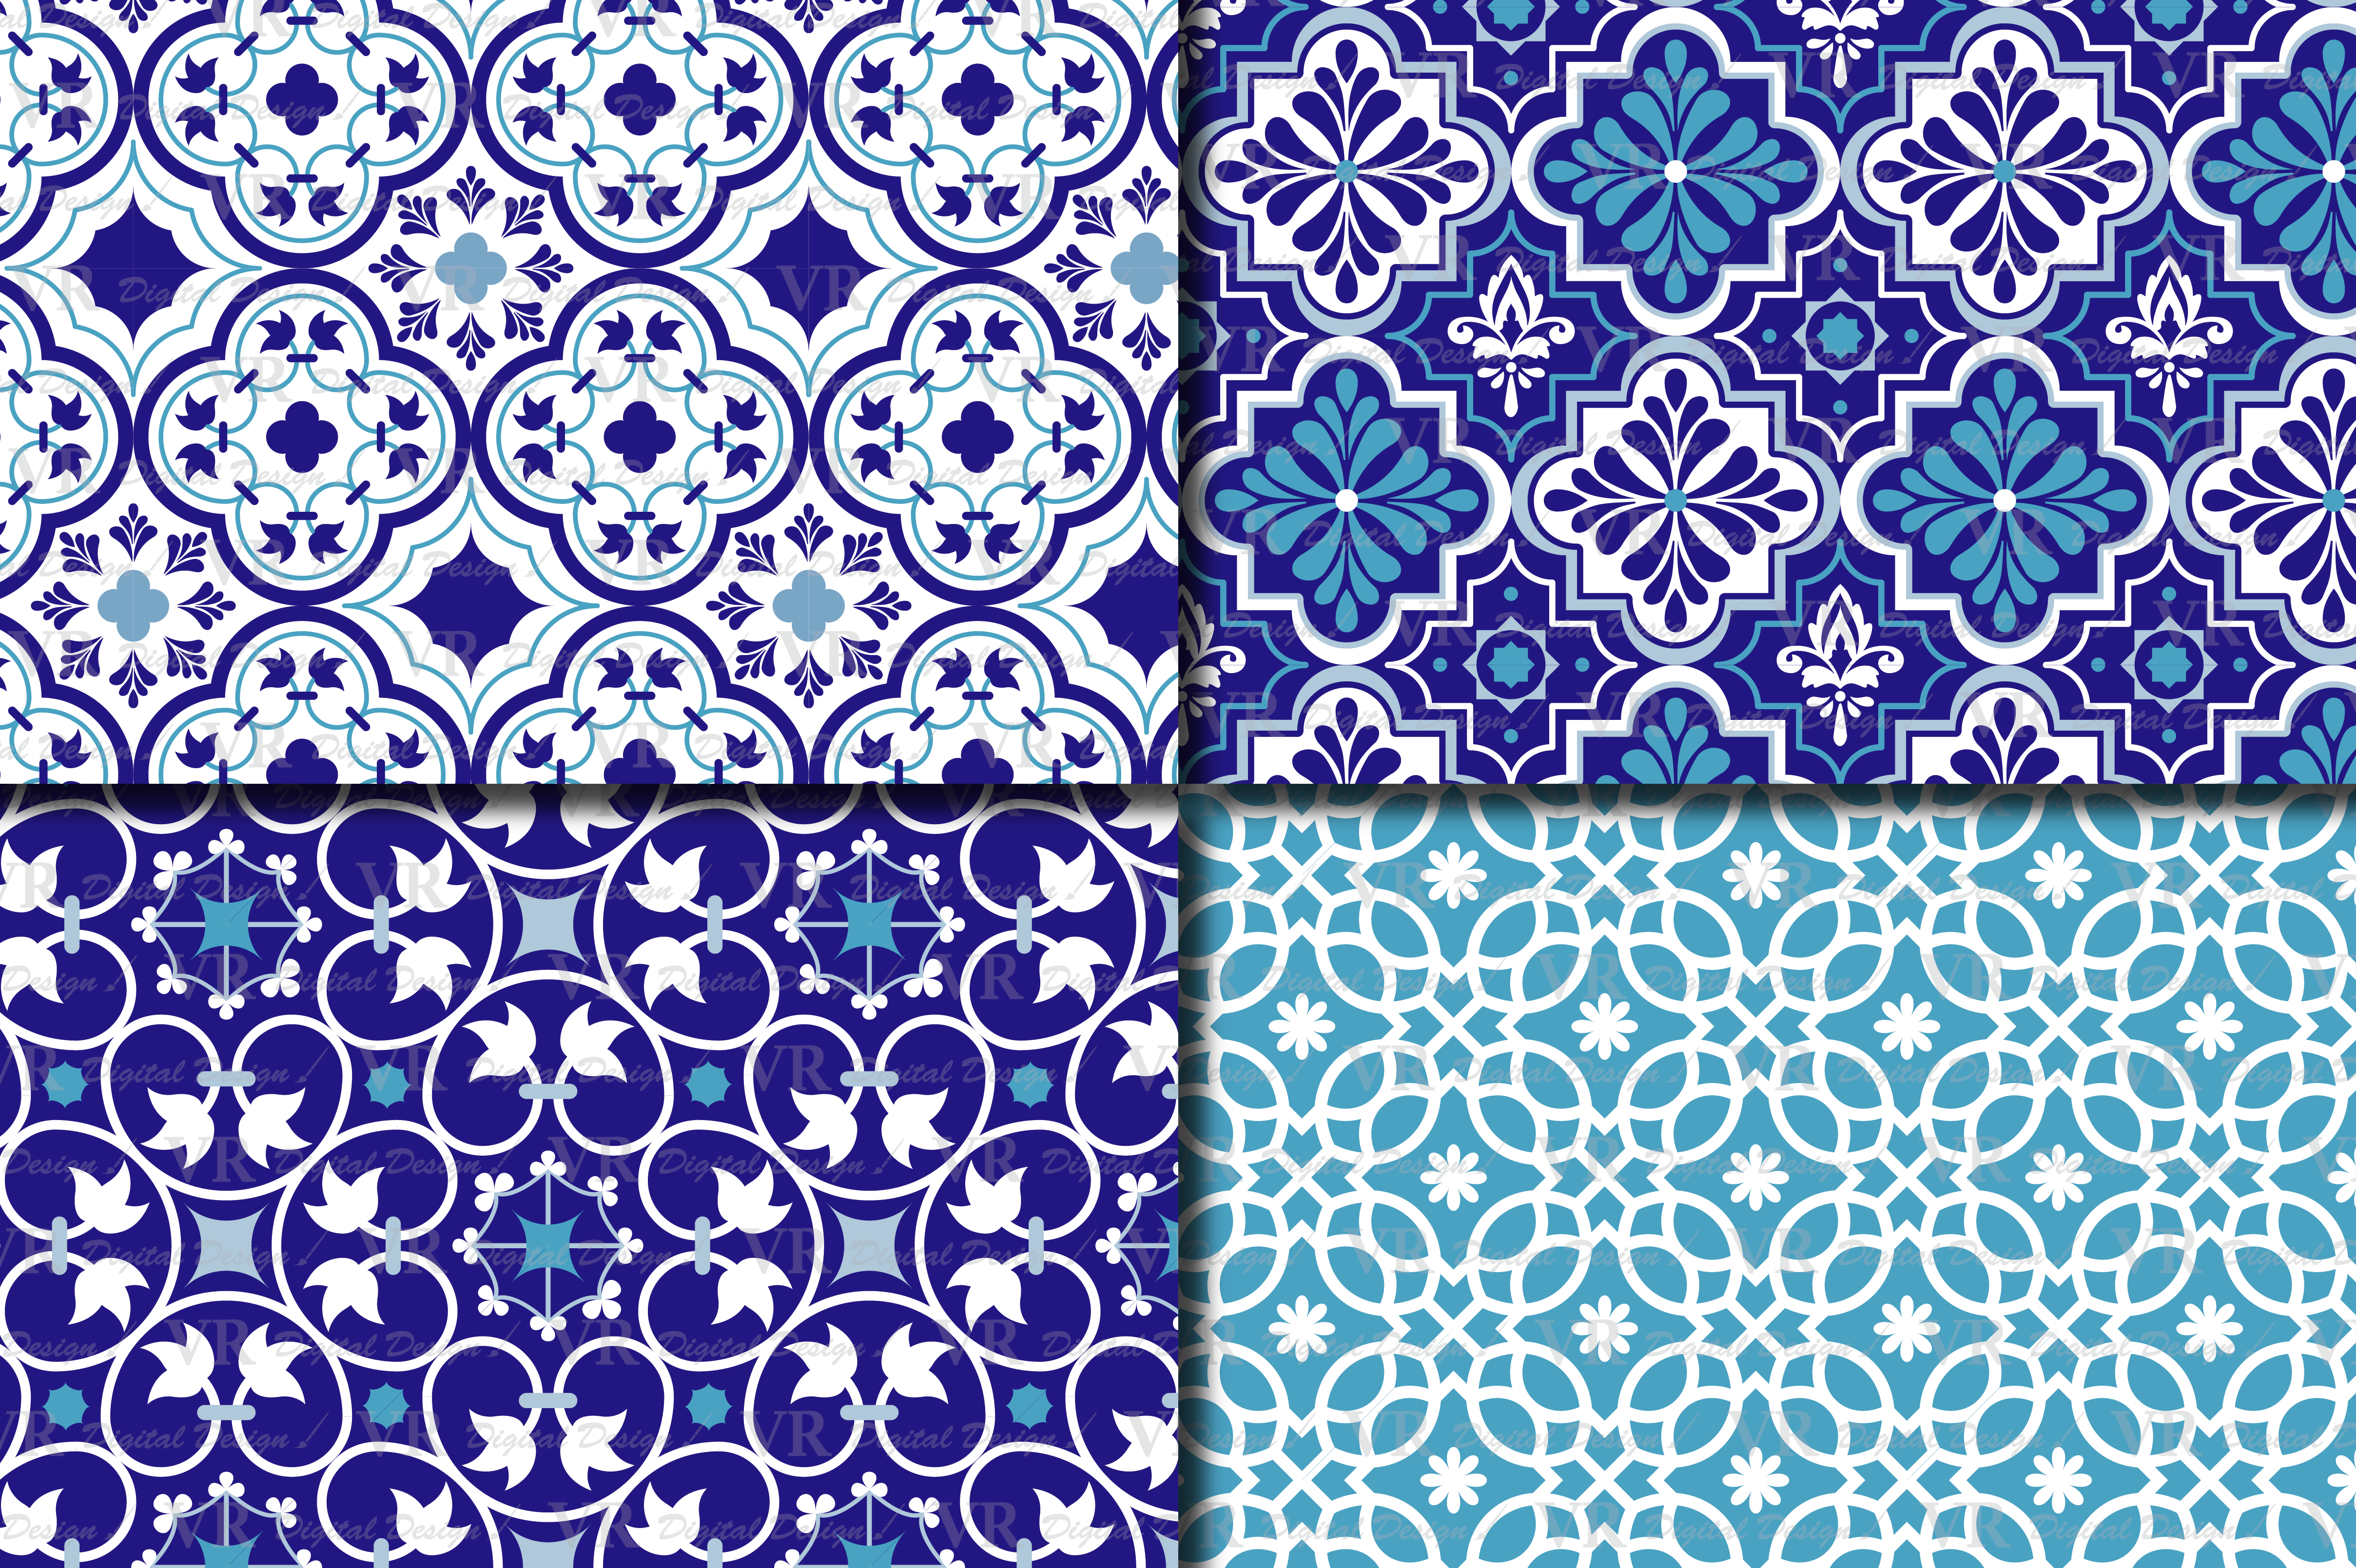 Download Free Blue Moroccan Digital Paper Pack Graphic By Vr Digital Design for Cricut Explore, Silhouette and other cutting machines.